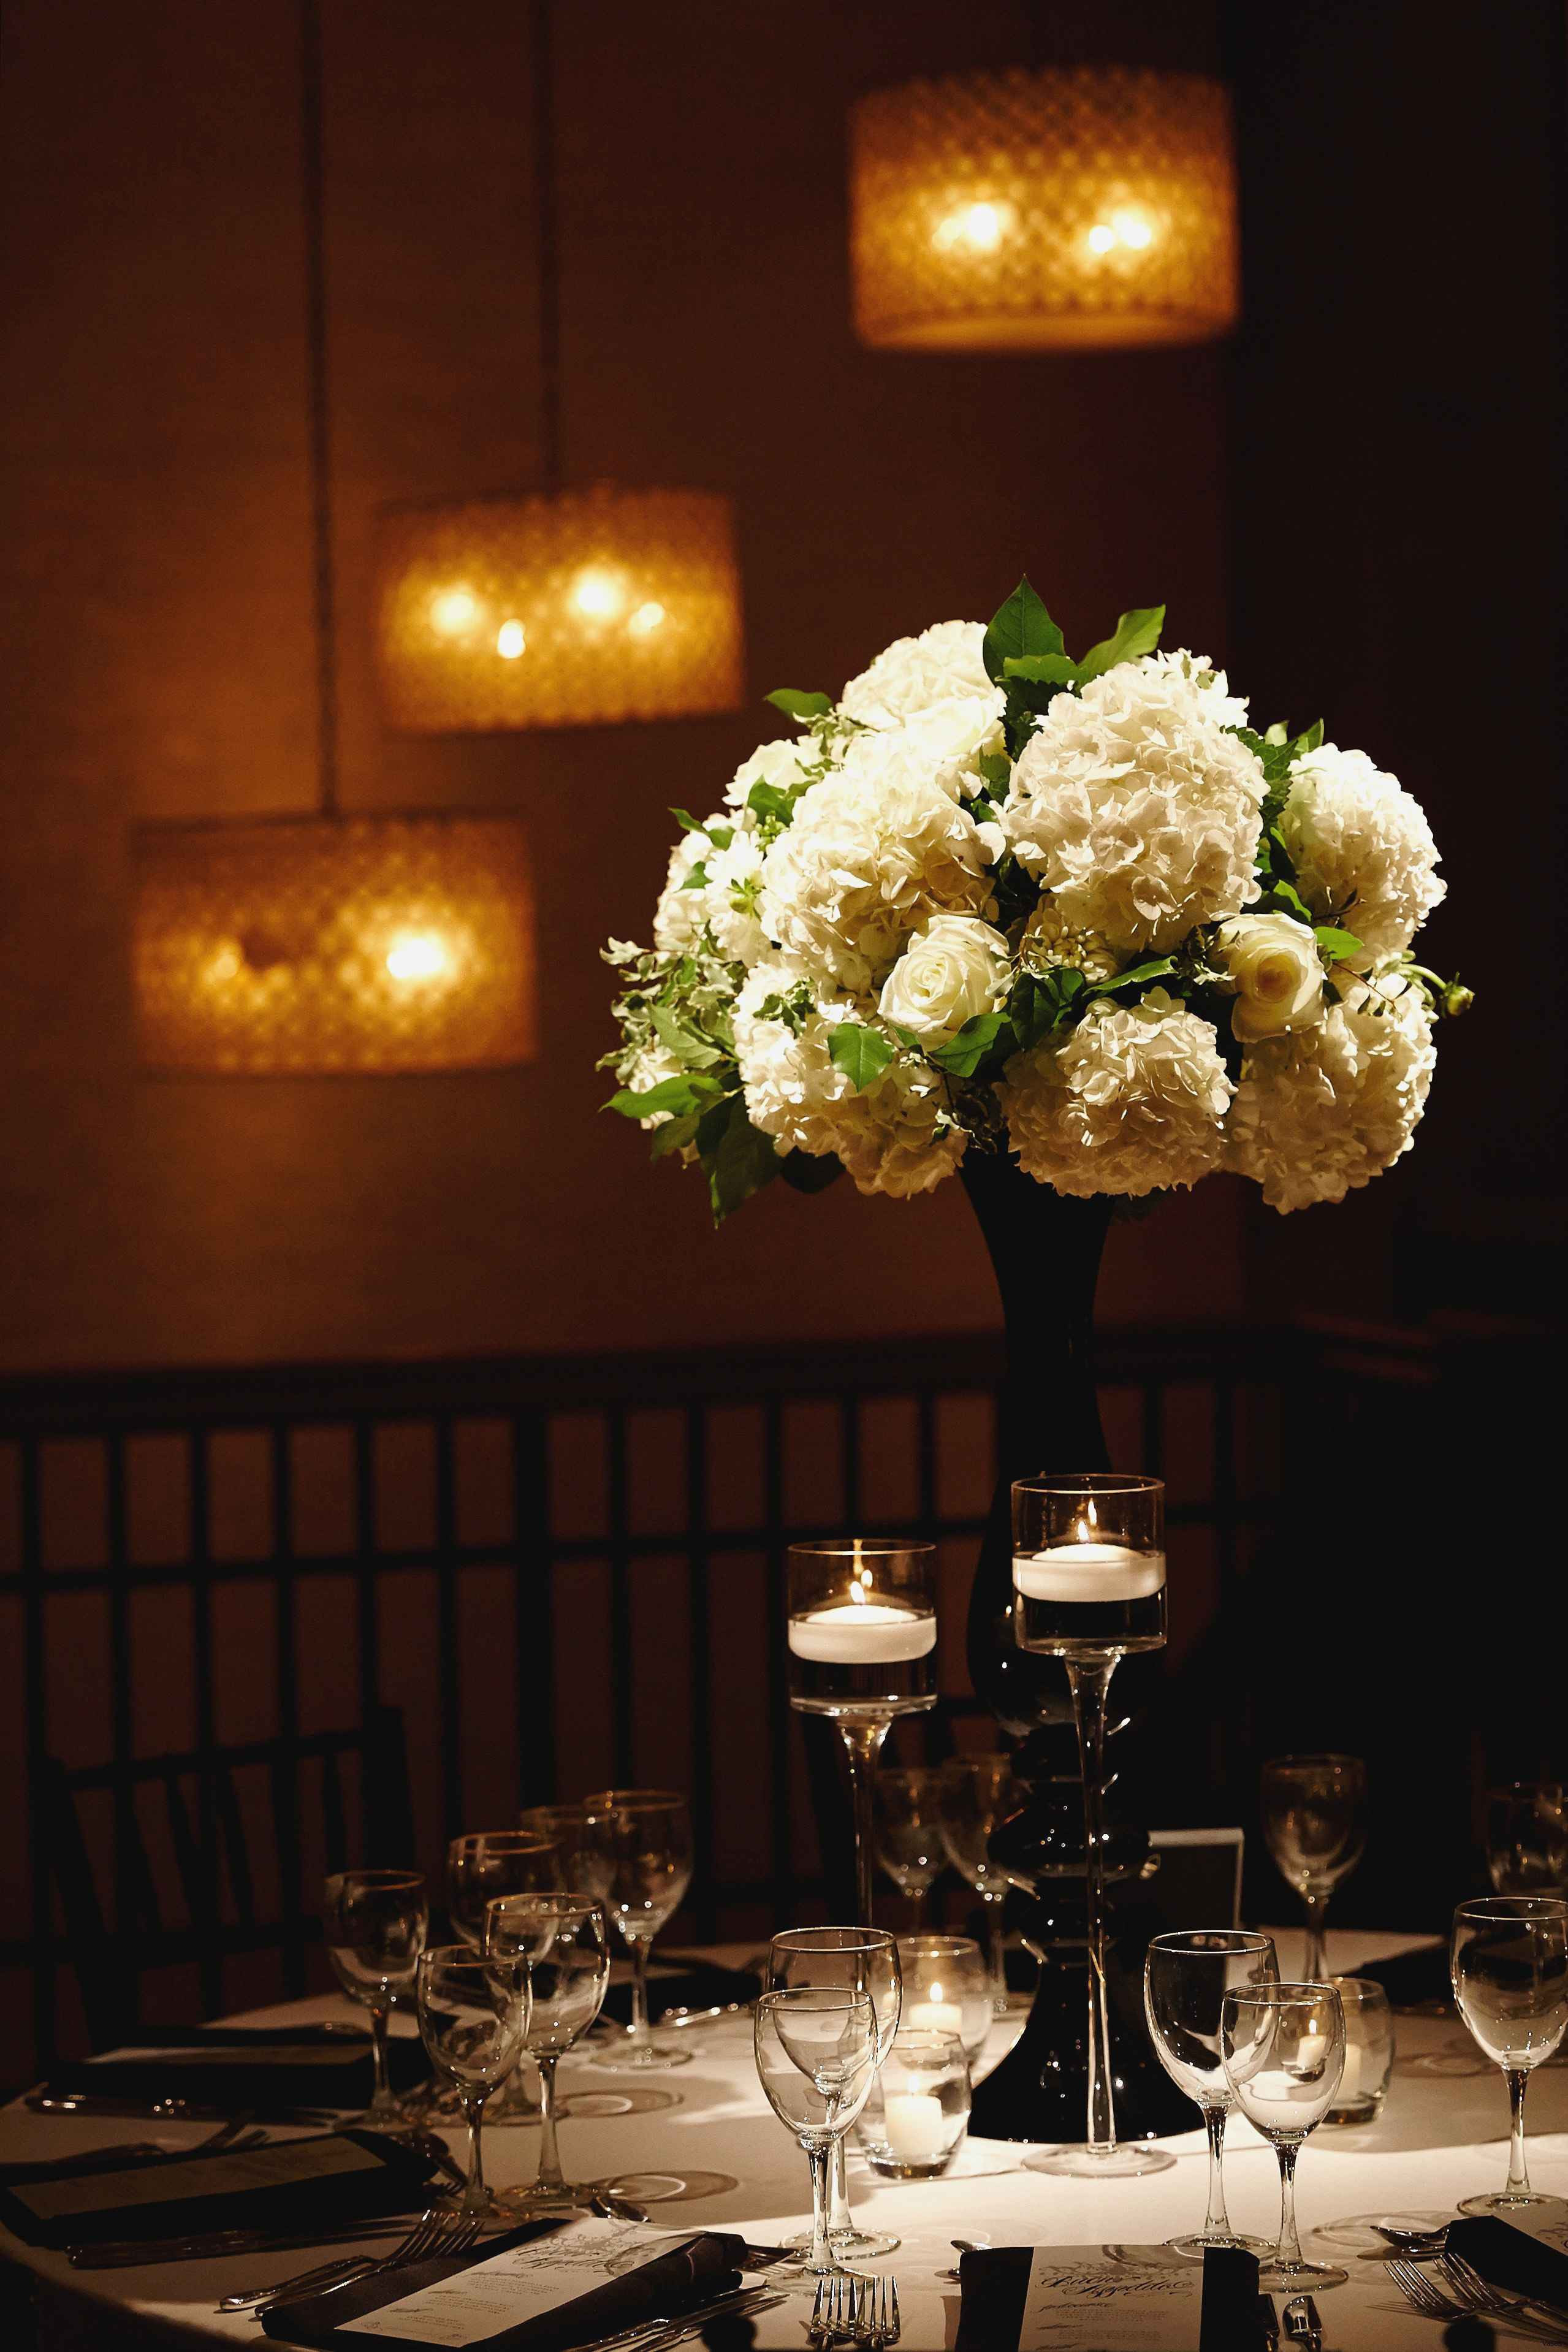 30 Stunning Teal Table Vase 2021 free download teal table vase of beautiful black and white wedding decor wedding theme throughout il fullxfull h vases black vase white flowers zoomi 0d with design inspiration where to